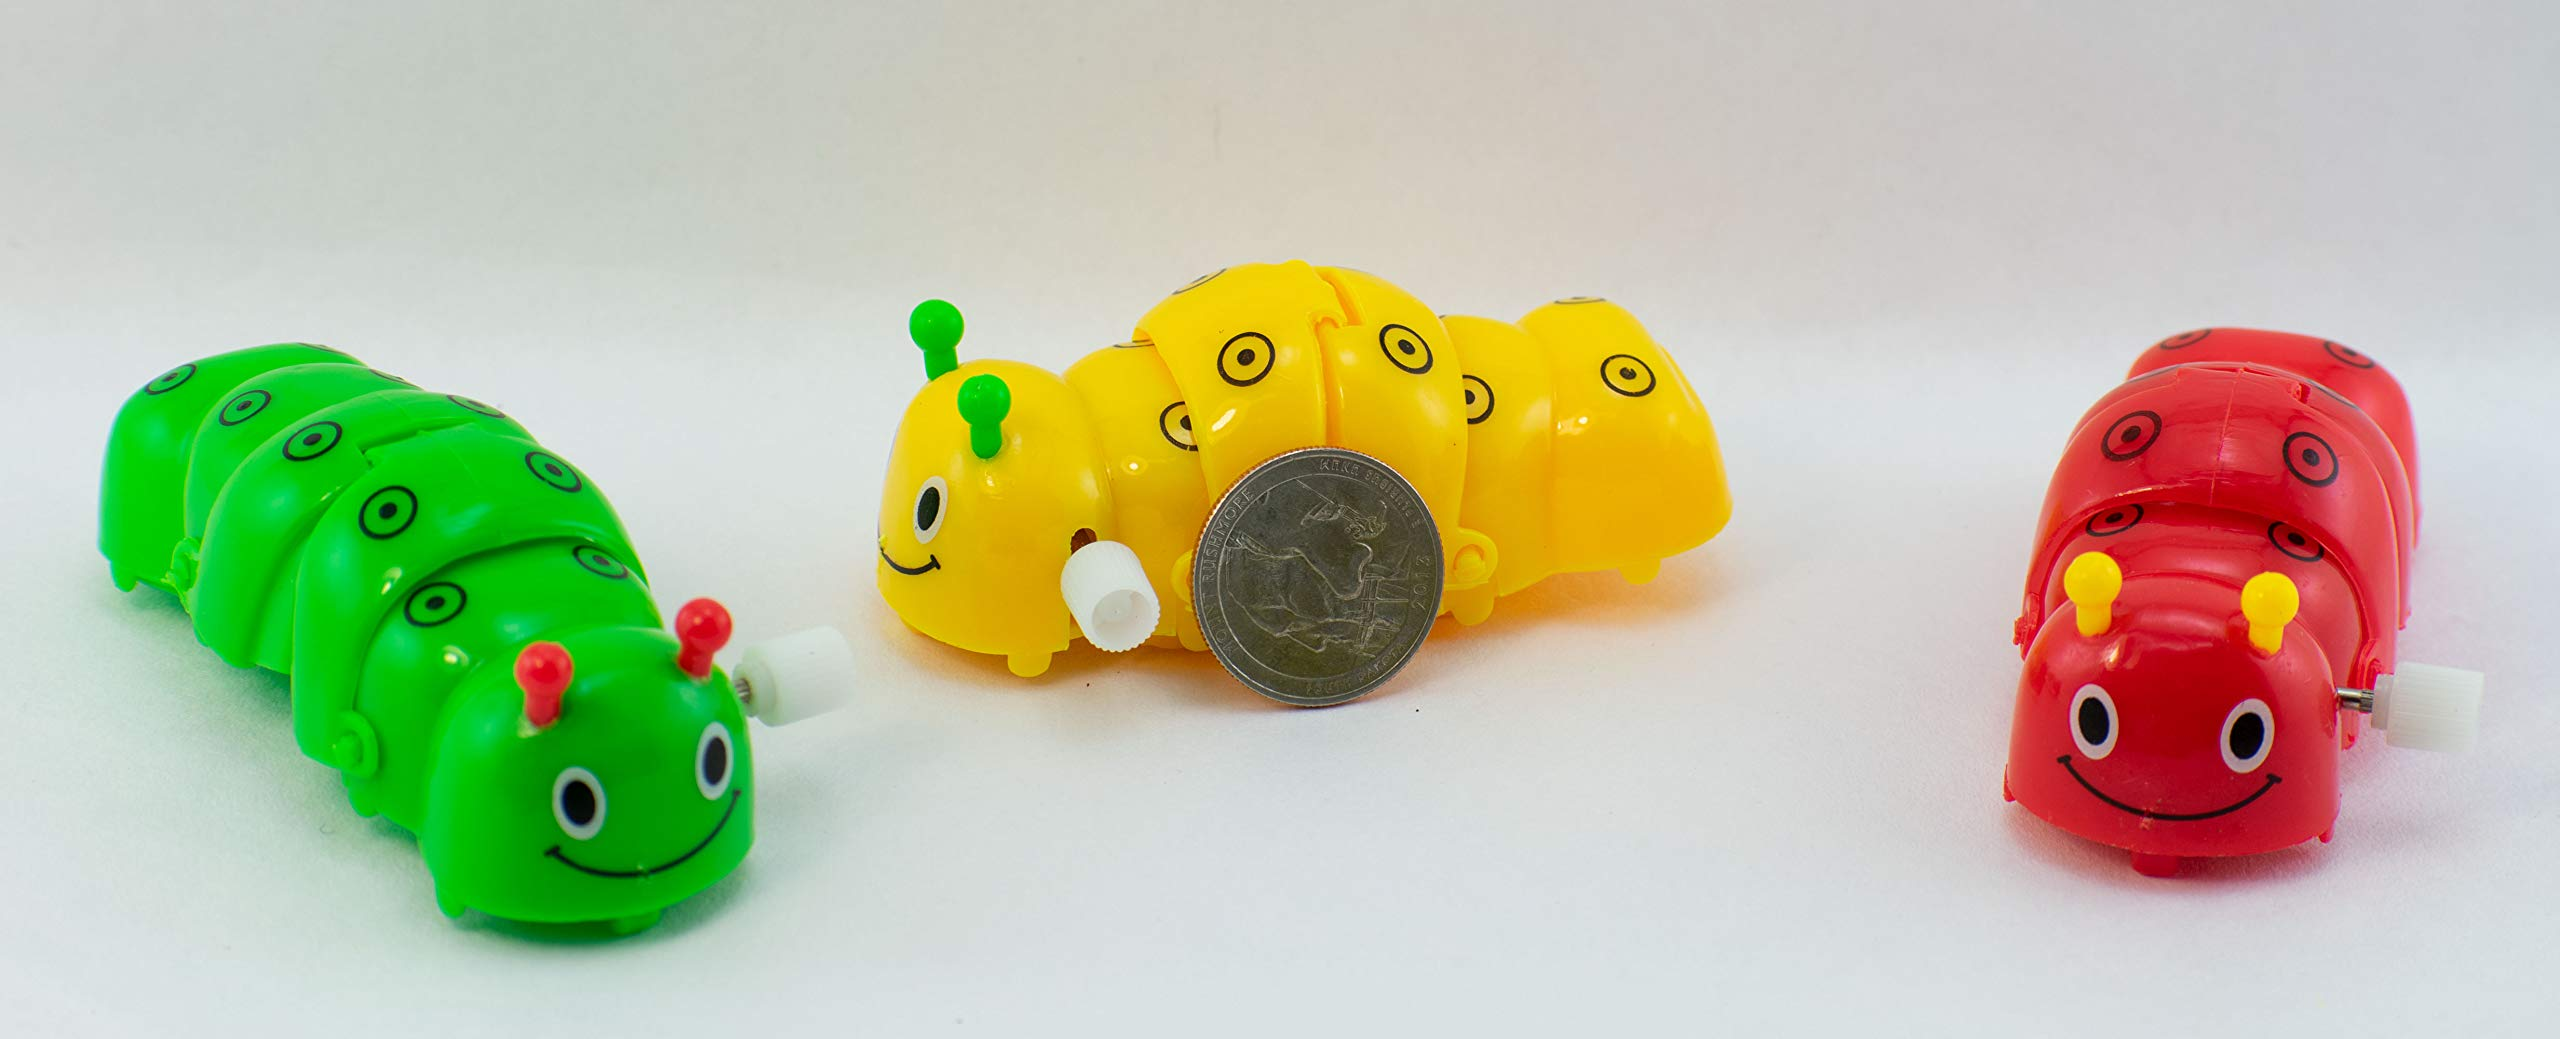 Giggle Time Wind-Up Caterpillar Assortment - (24) Pieces - Assorted Bright Colors - for Kids, Boys and Girls, Party Favors, Pinata Stuffers, Children's Gift Bags, Carnival Prizes by Giggle Time (Image #2)